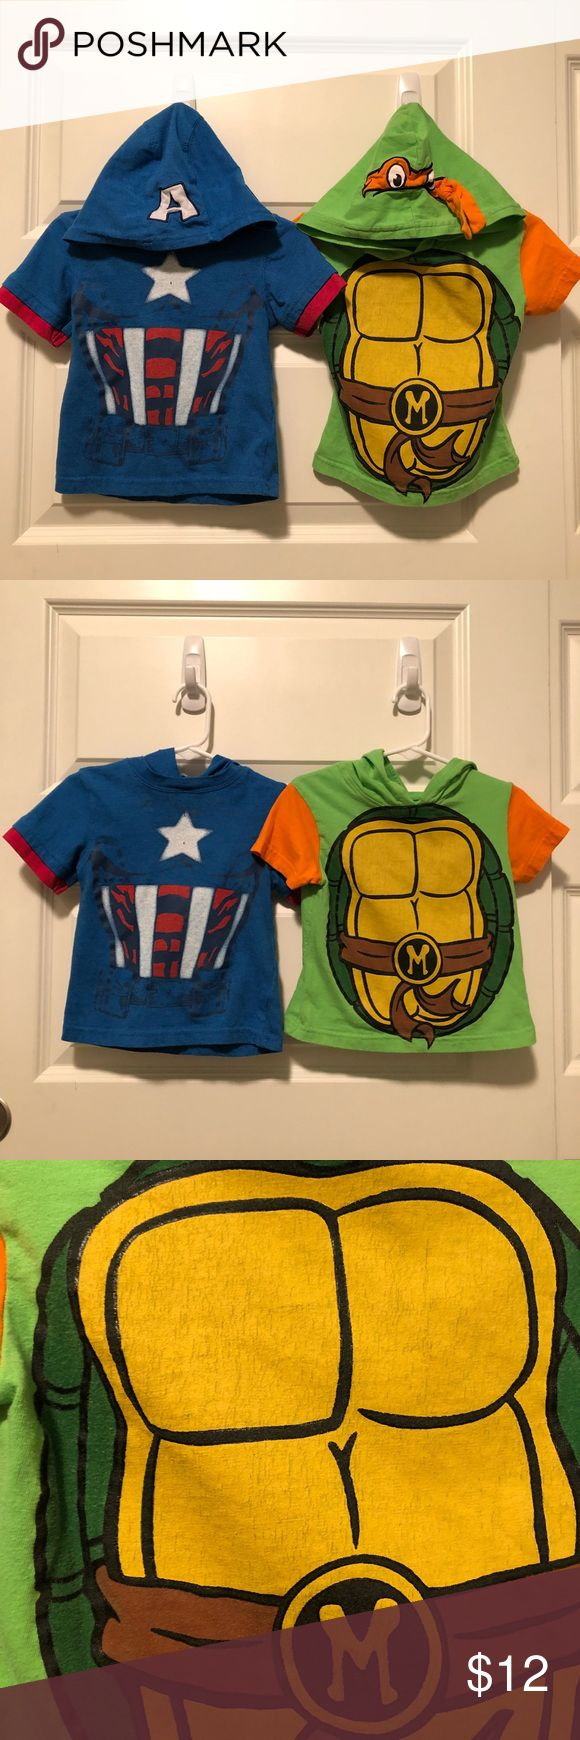 2 Hoodie Tees Captain American TMNT 18 month This listing is for two tees- the one on the left is blue and Captain America themed, while the one on the right is green and Teenage Mutant Ninja Turtle themed. Both gently worn without stains or holes, but some wear to the decoration- see photos for fabric closeup. Both short sleeved with adorable themed hoods, size 18 month. Shirts & Tops Tees - Short Sleeve